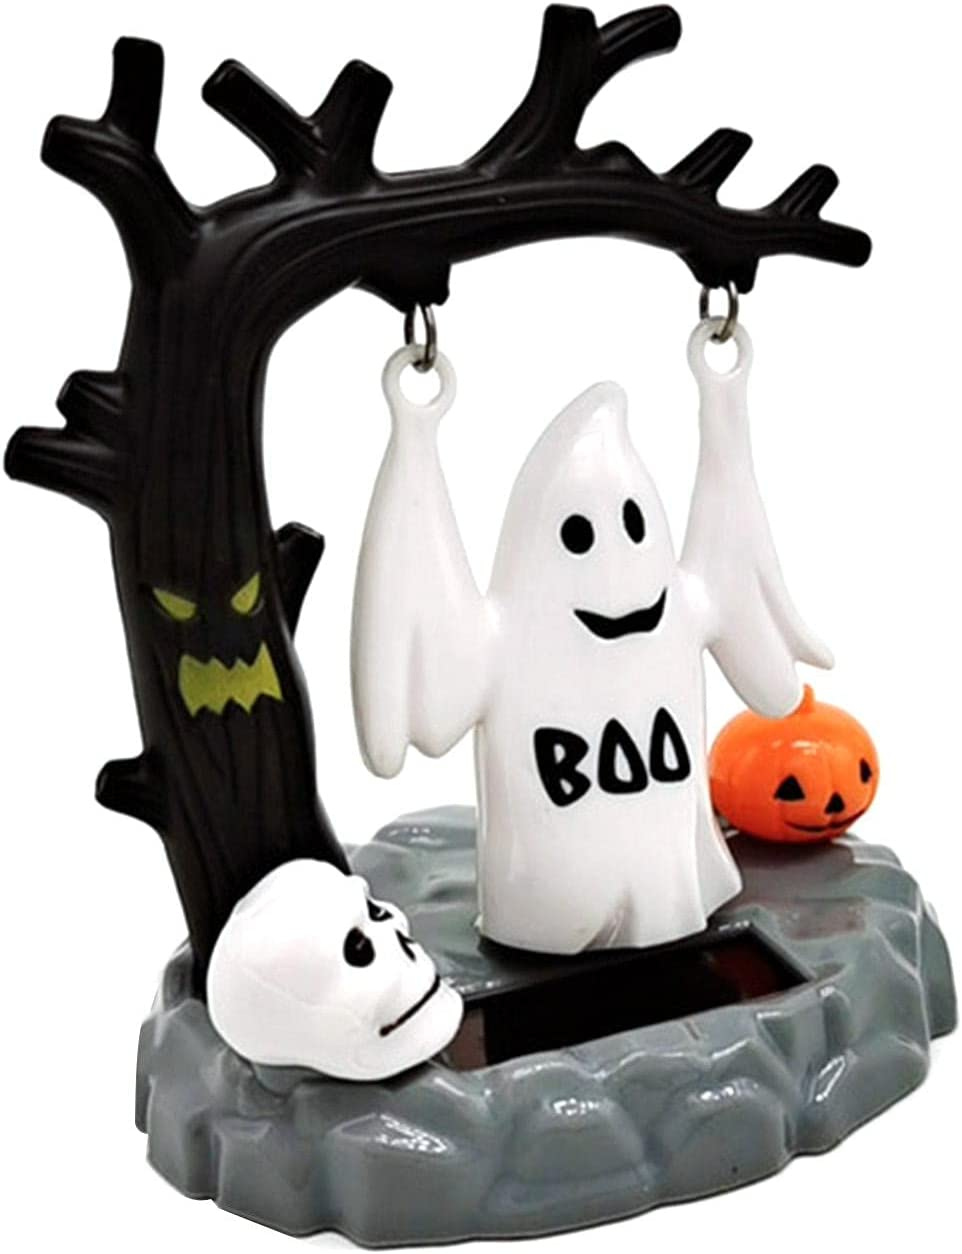 LAFANDE Limited time sale Solar Power Ghost Dancing Swing Toy Dashboard All items in the store Car